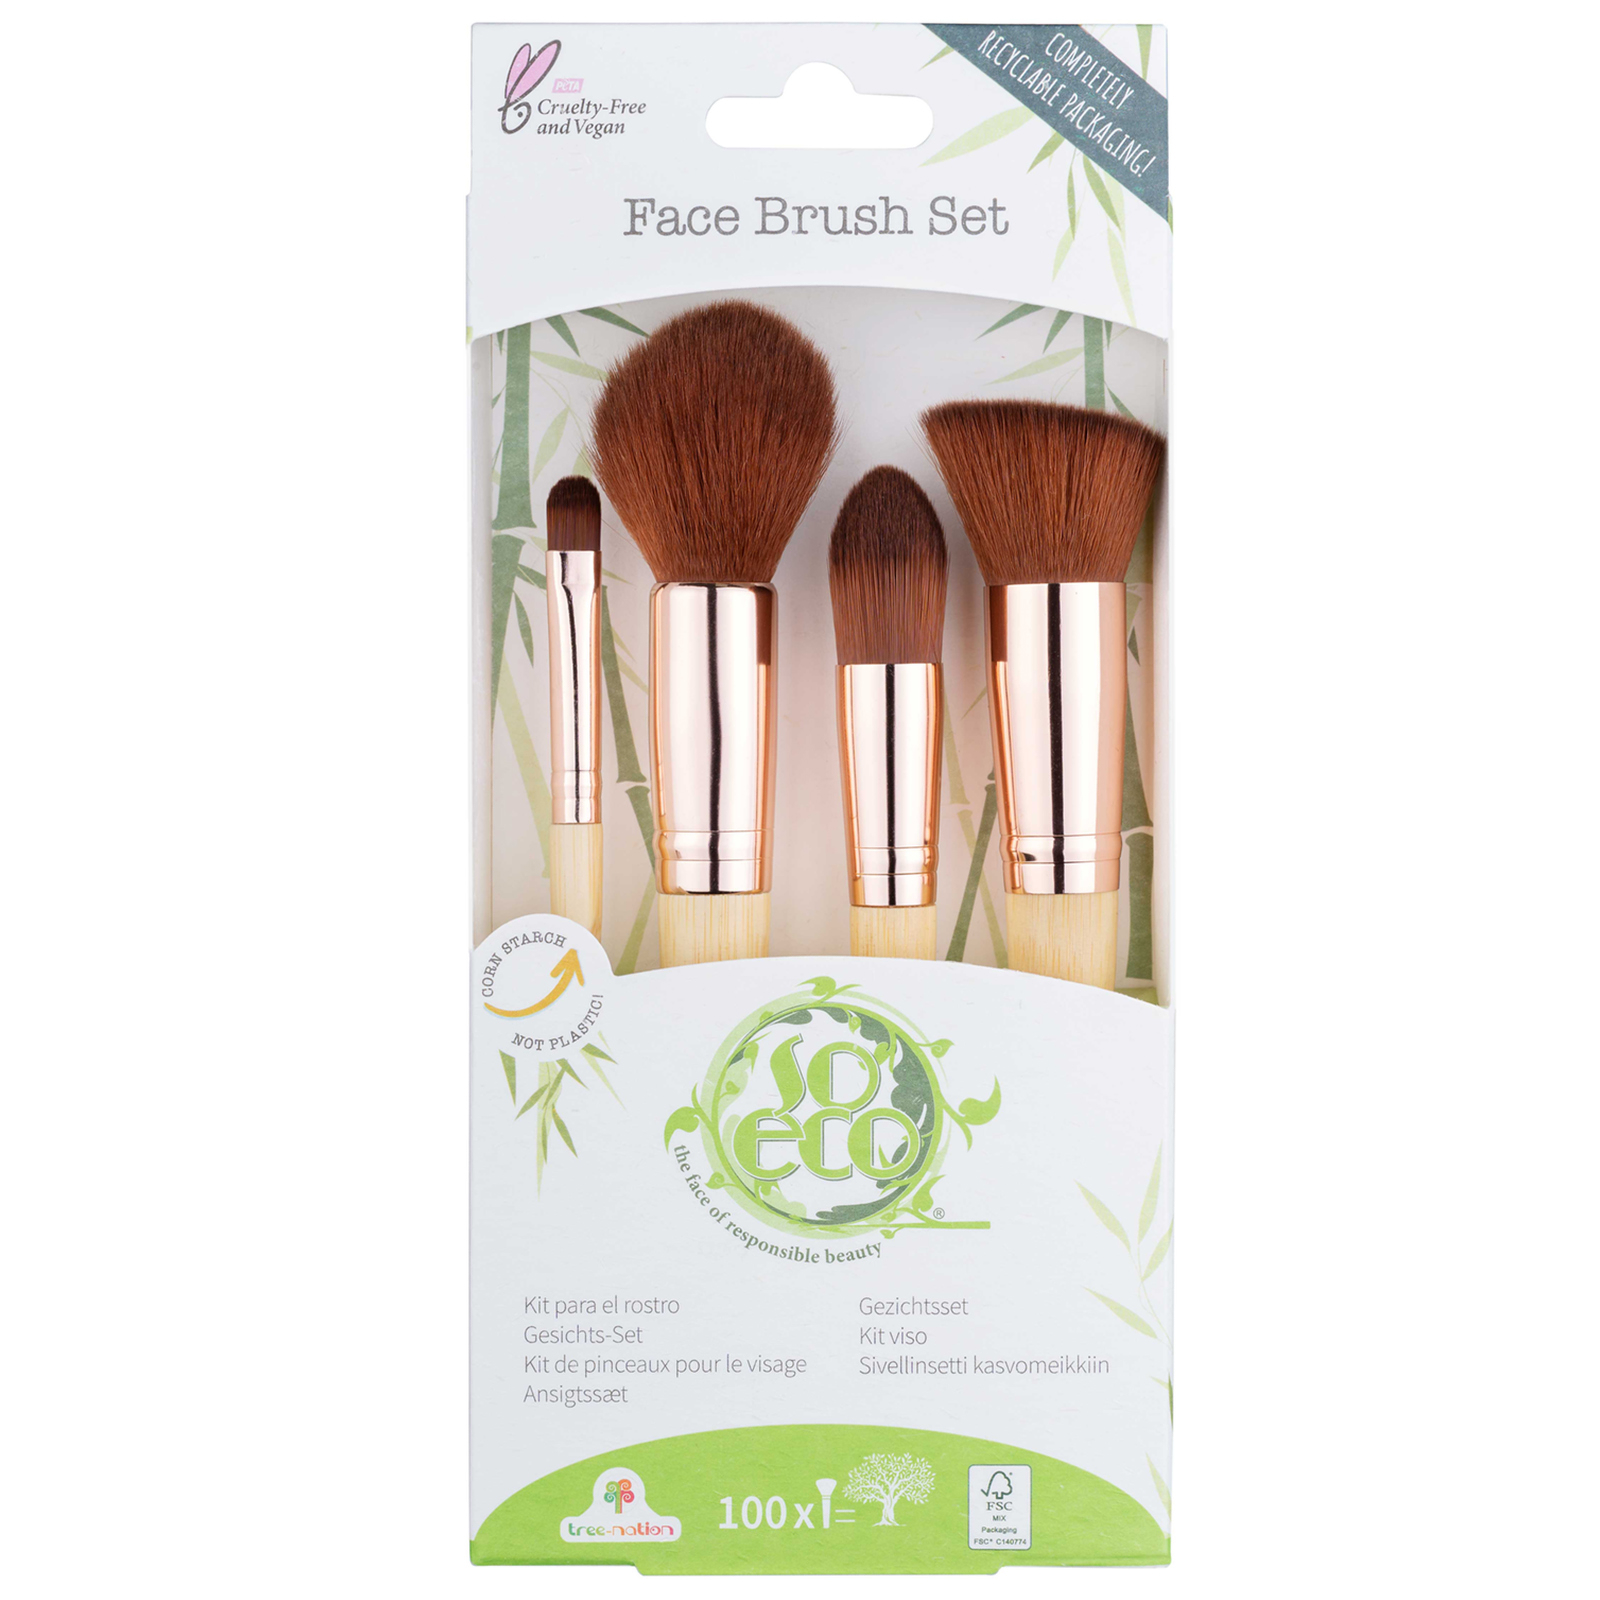 So Eco Set Face Kit